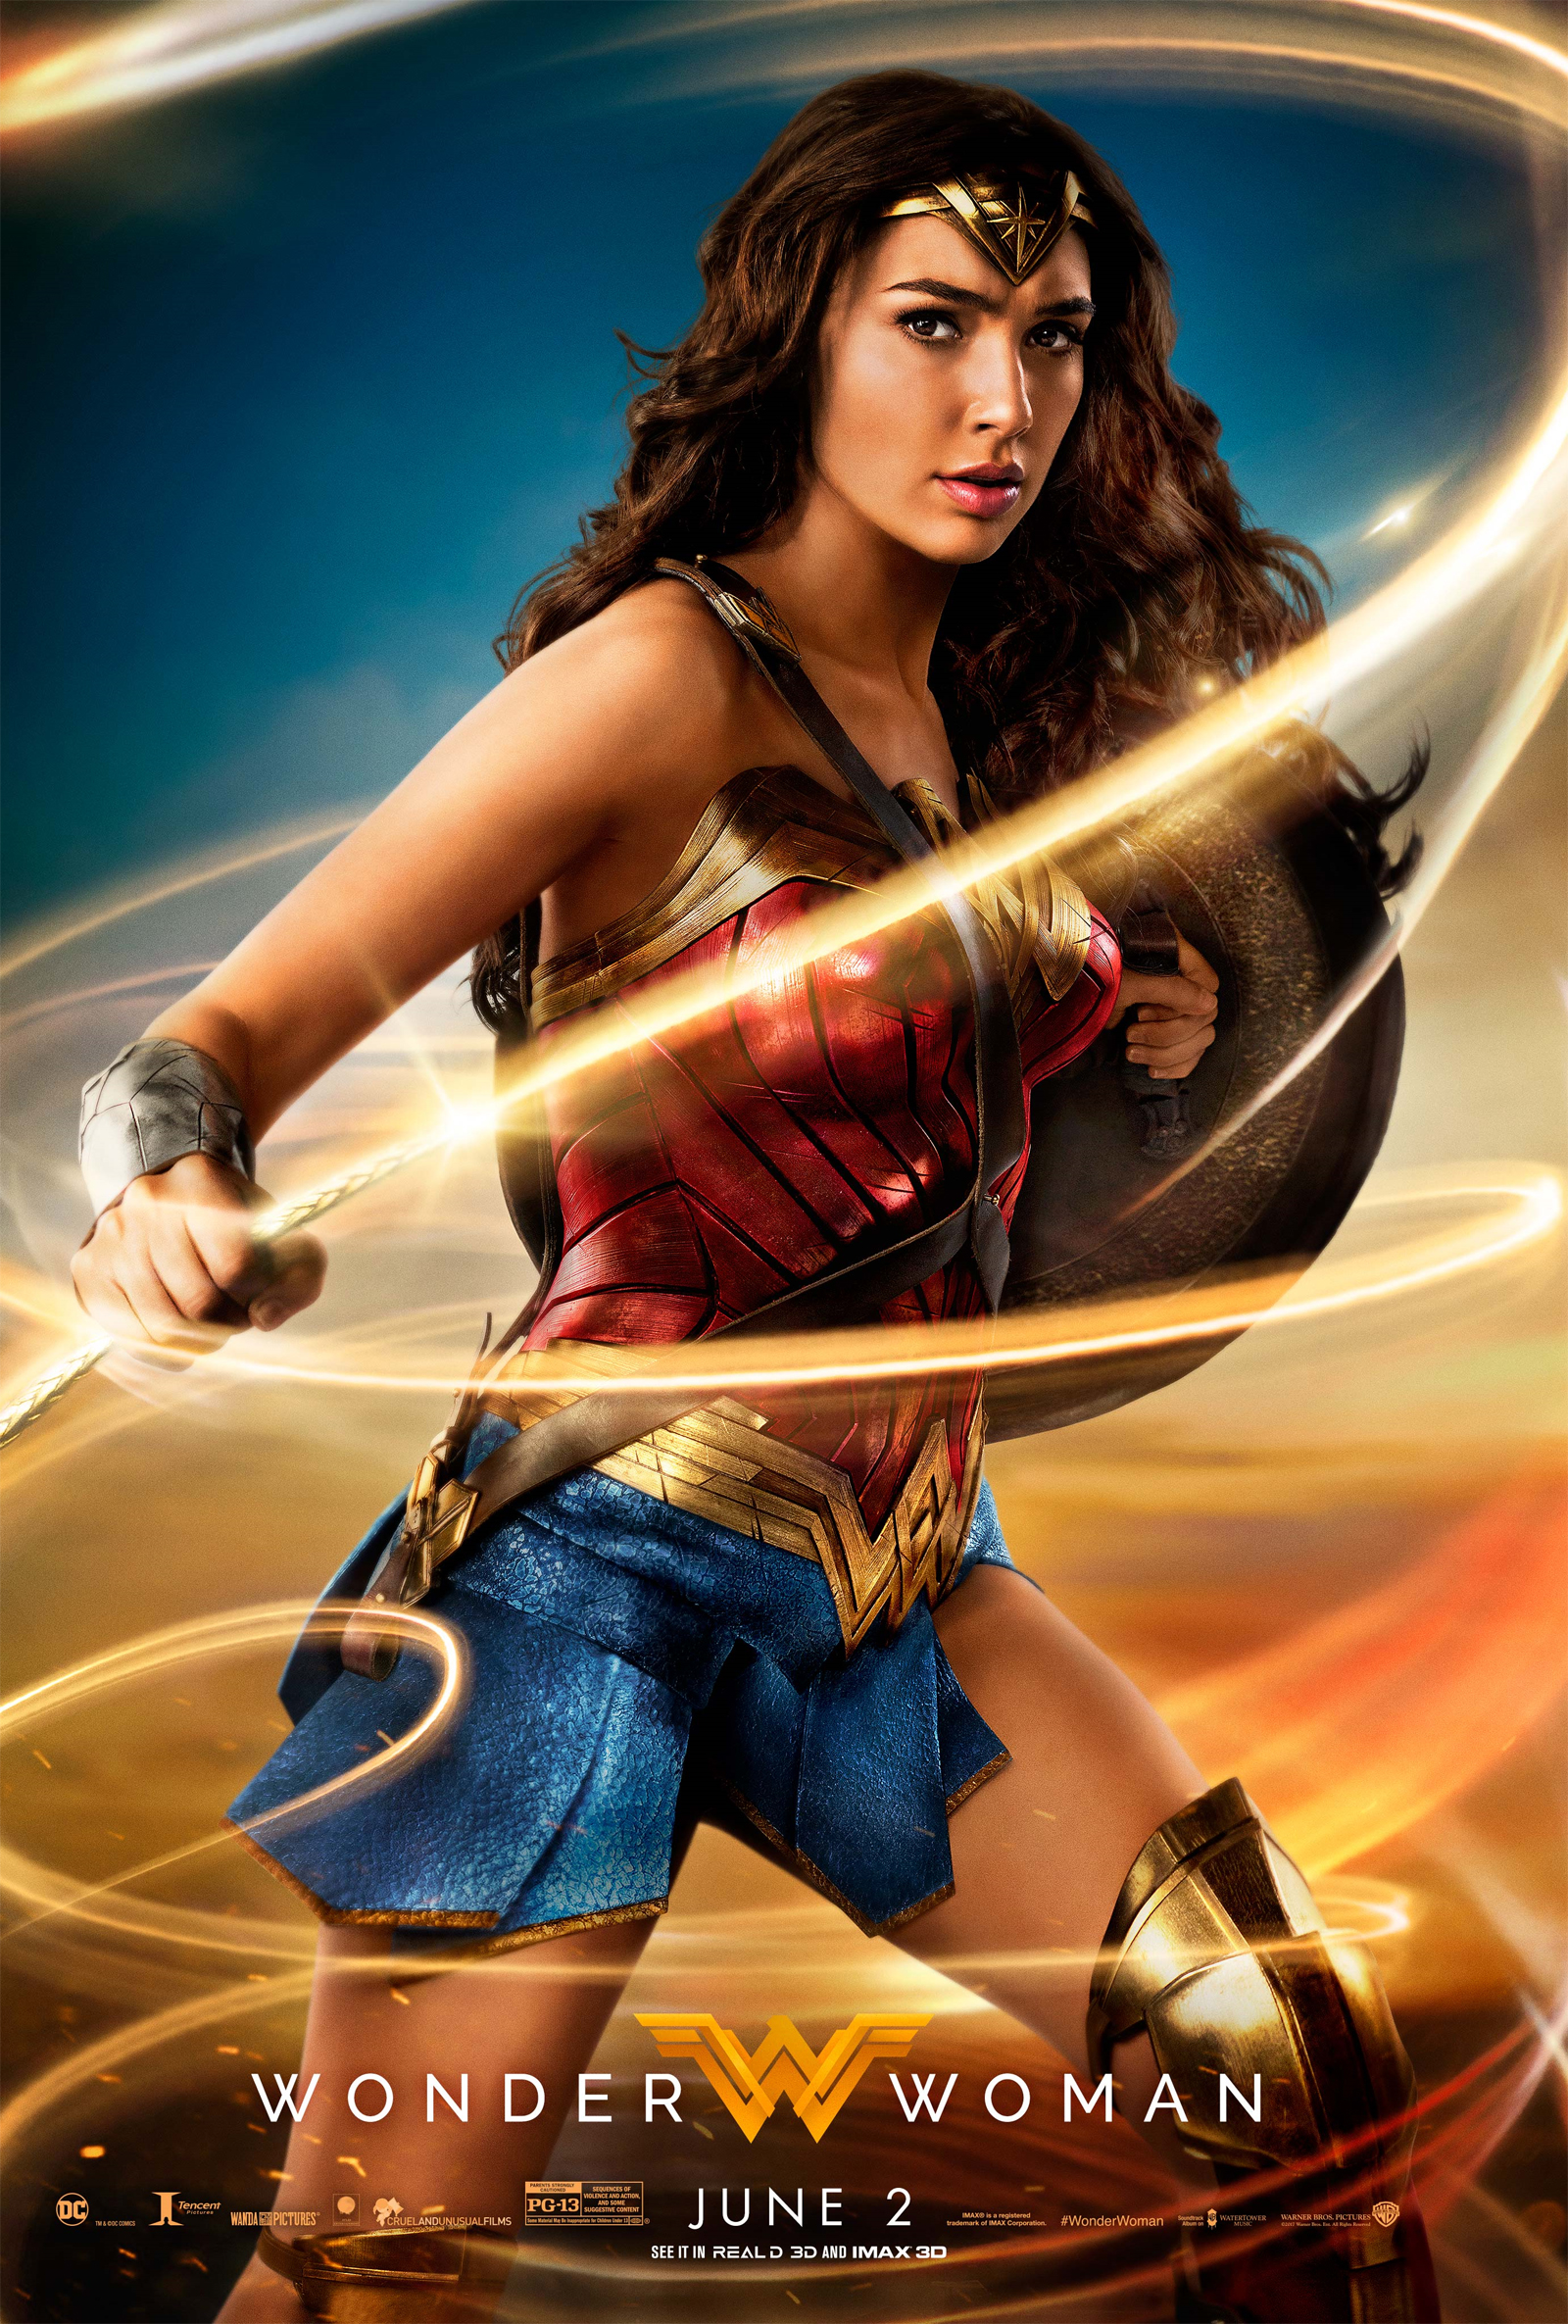 Another Wonder Woman poster